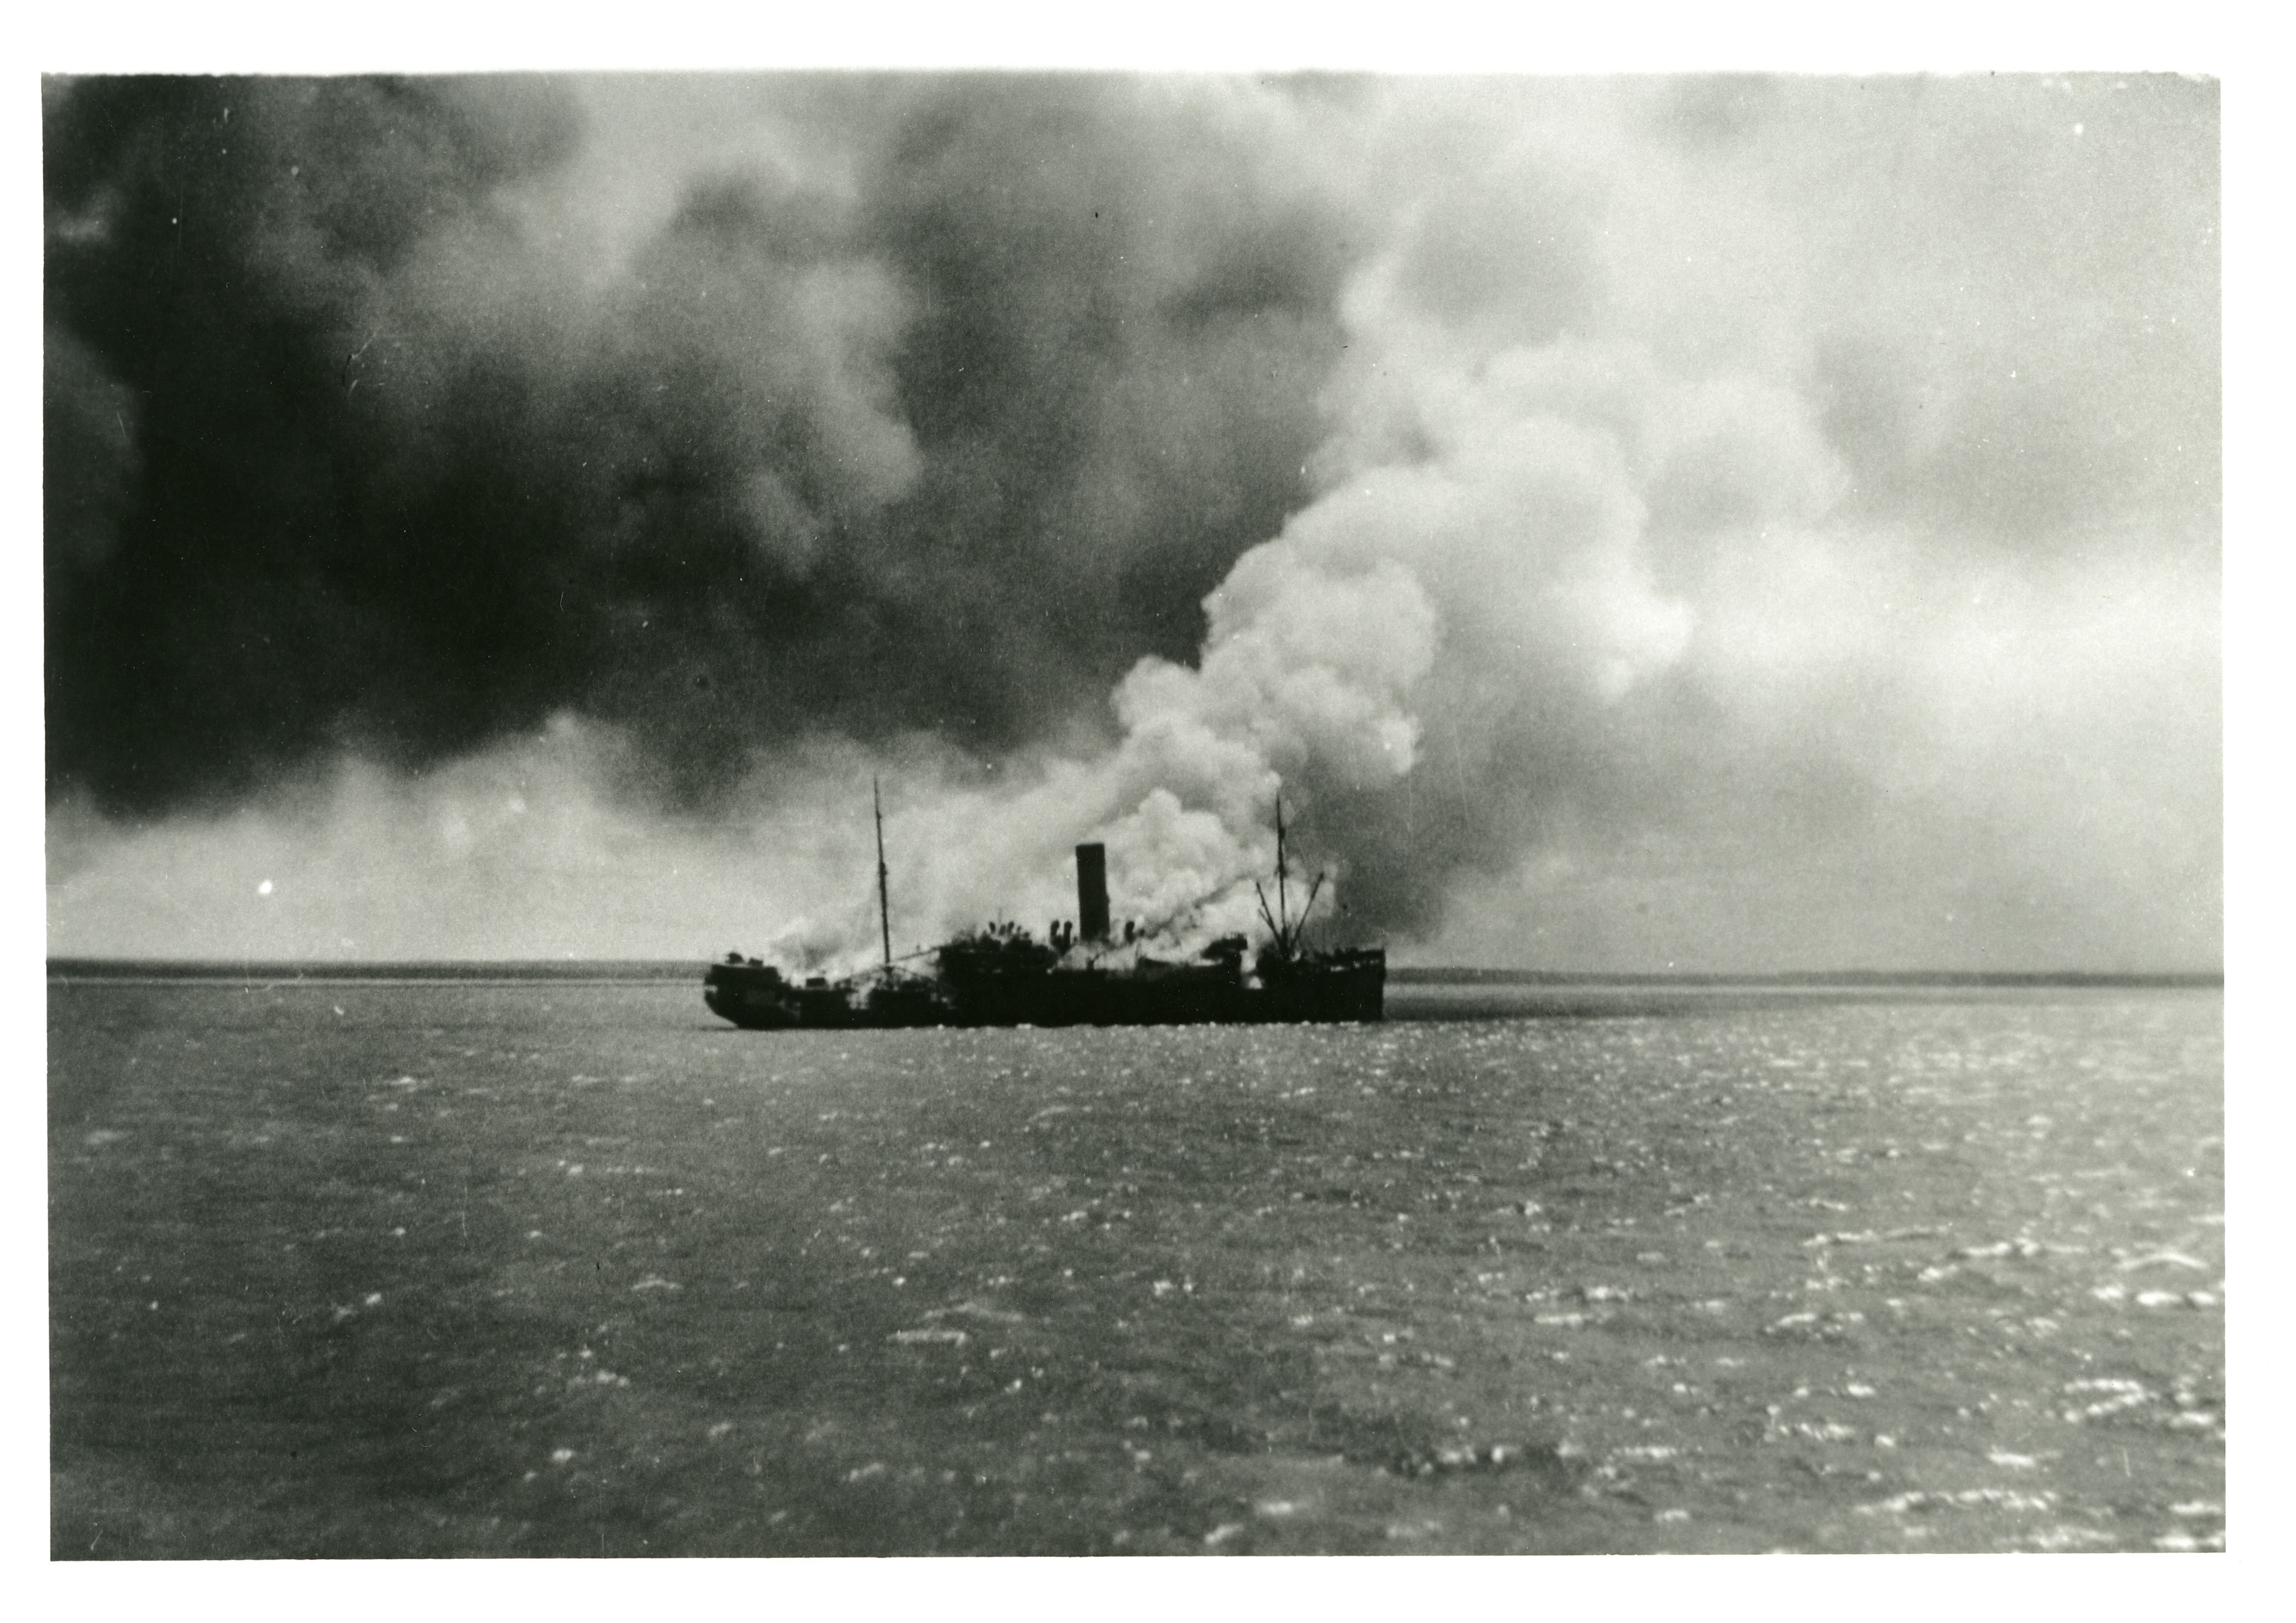 HMAT Zealandia burning on Darwin Harbour during the first raid